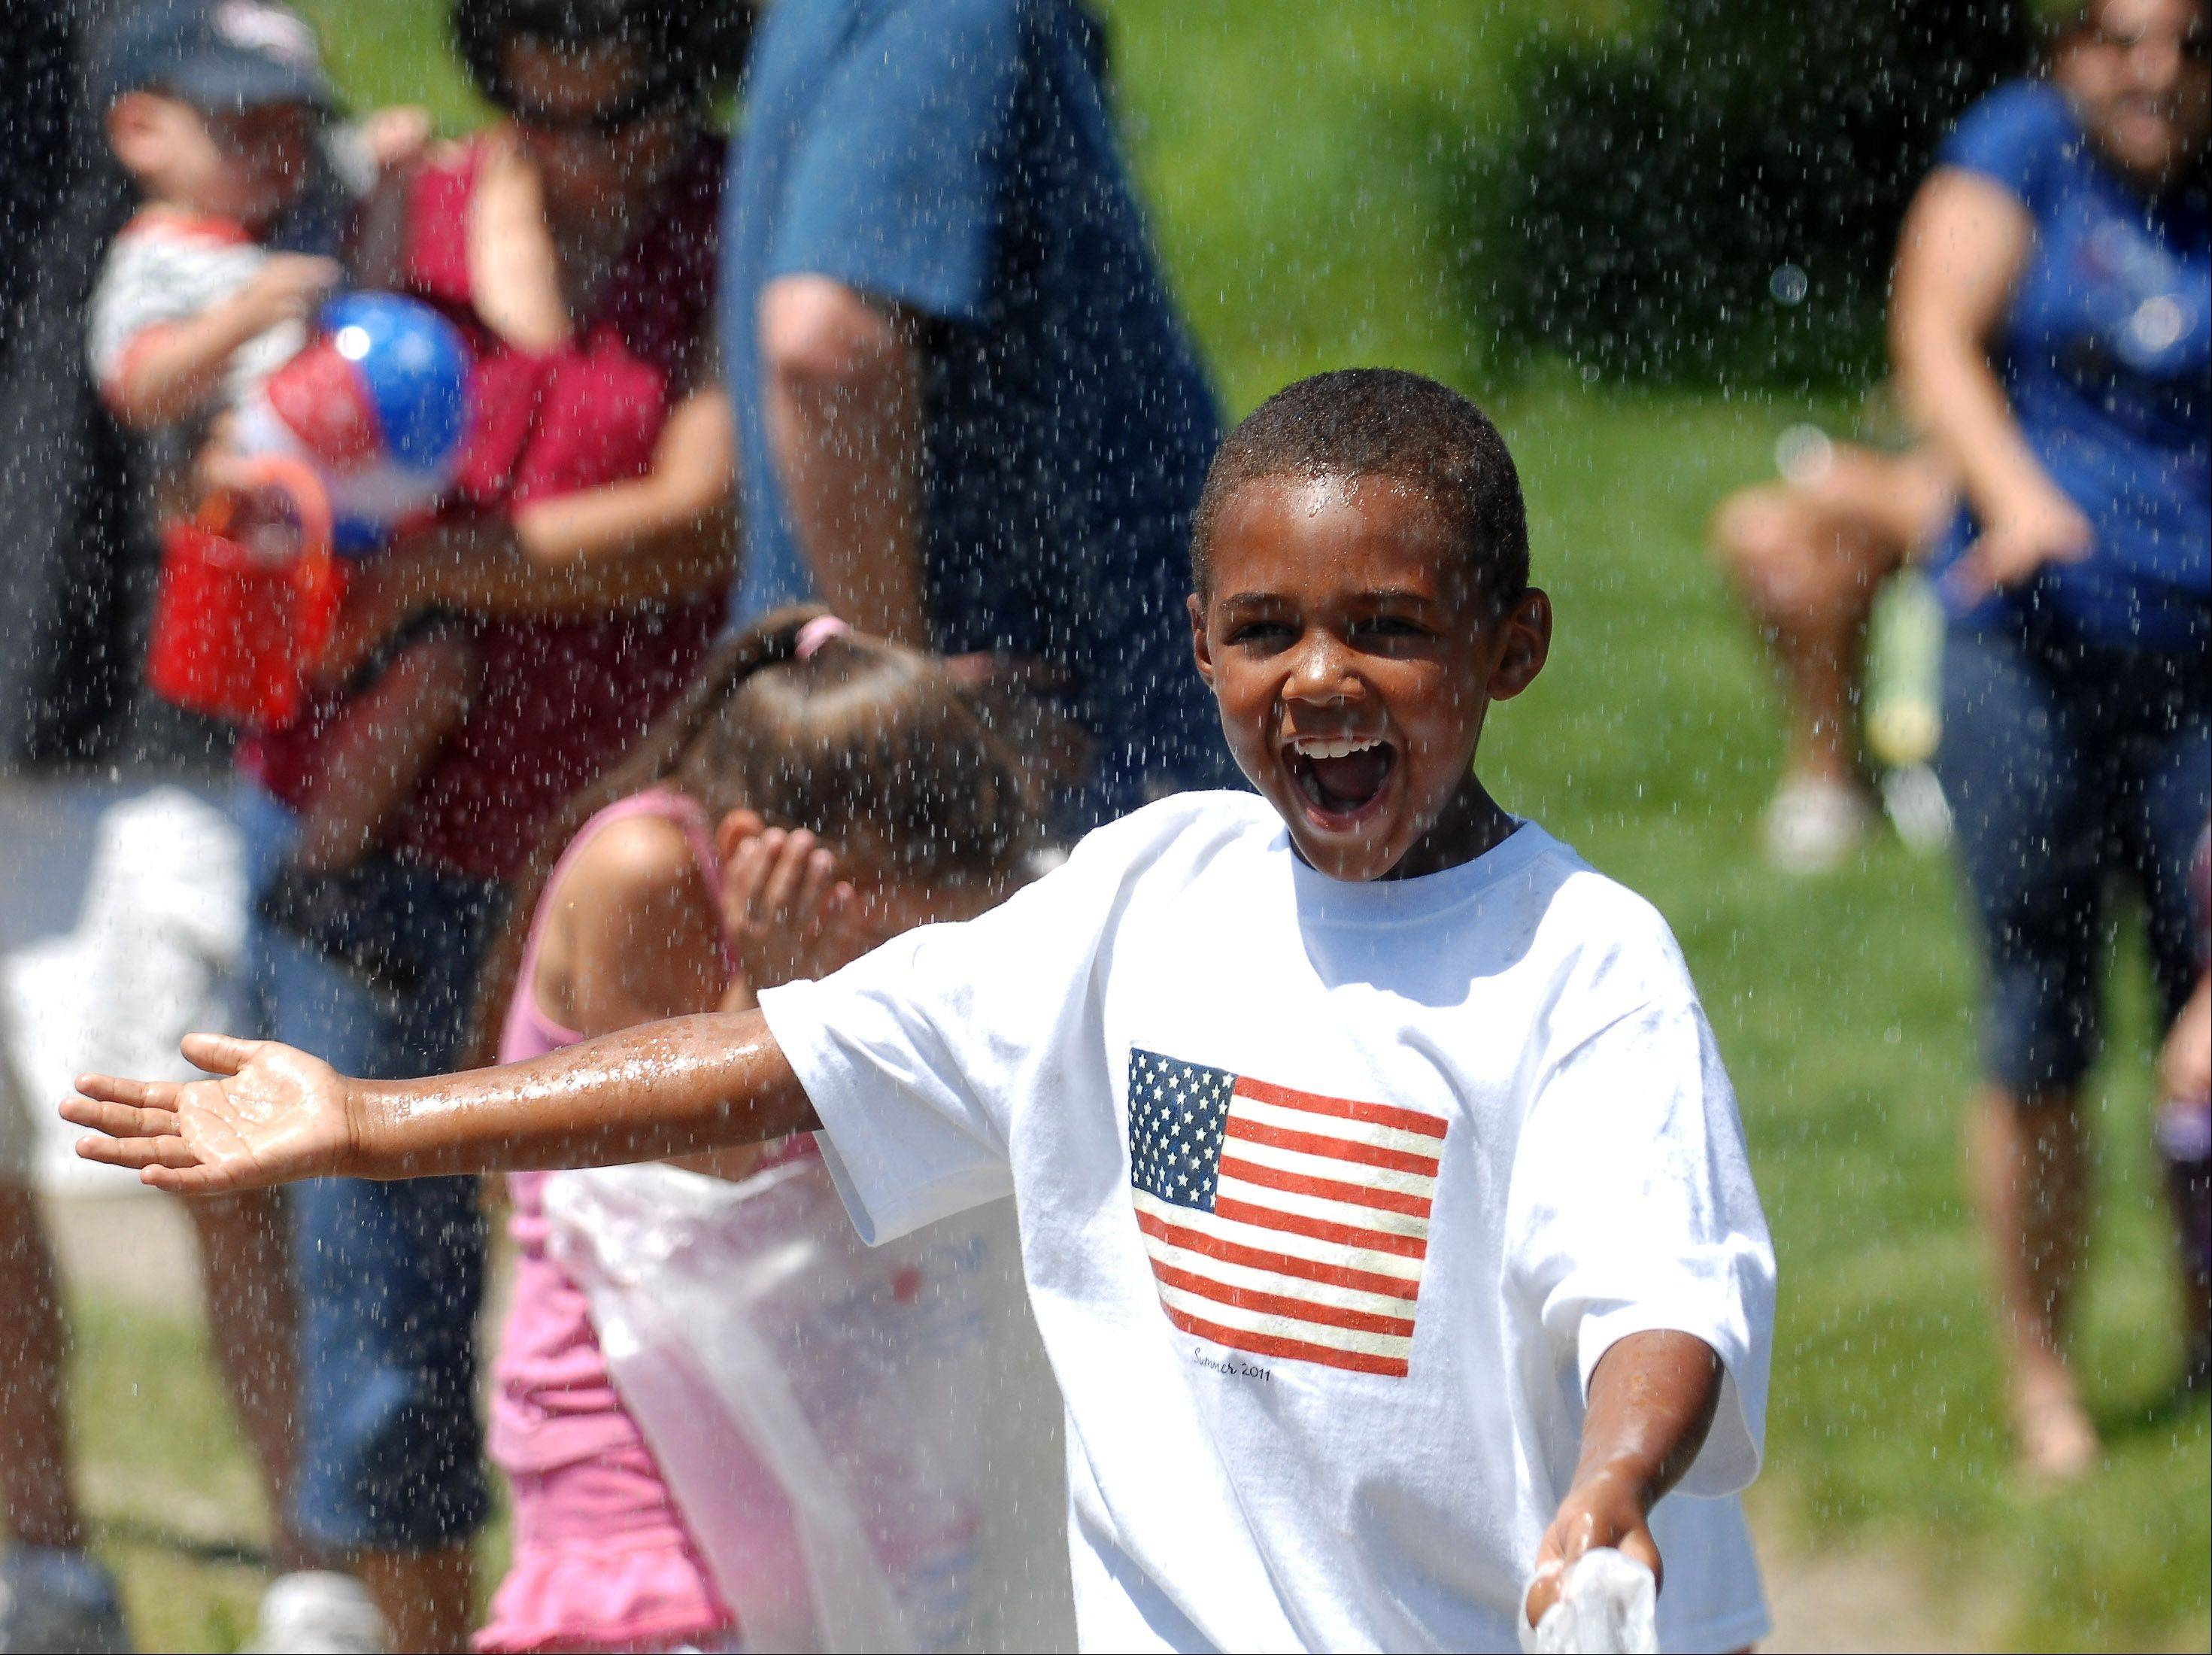 While others scurry or hide, T.J. Stoutemire, 7, of West Dundee embraces the cool shower sprayed on the crowd by a Rutland-Dundee fire truck during Sleepy Hollow's Fourth of July parade Monday.